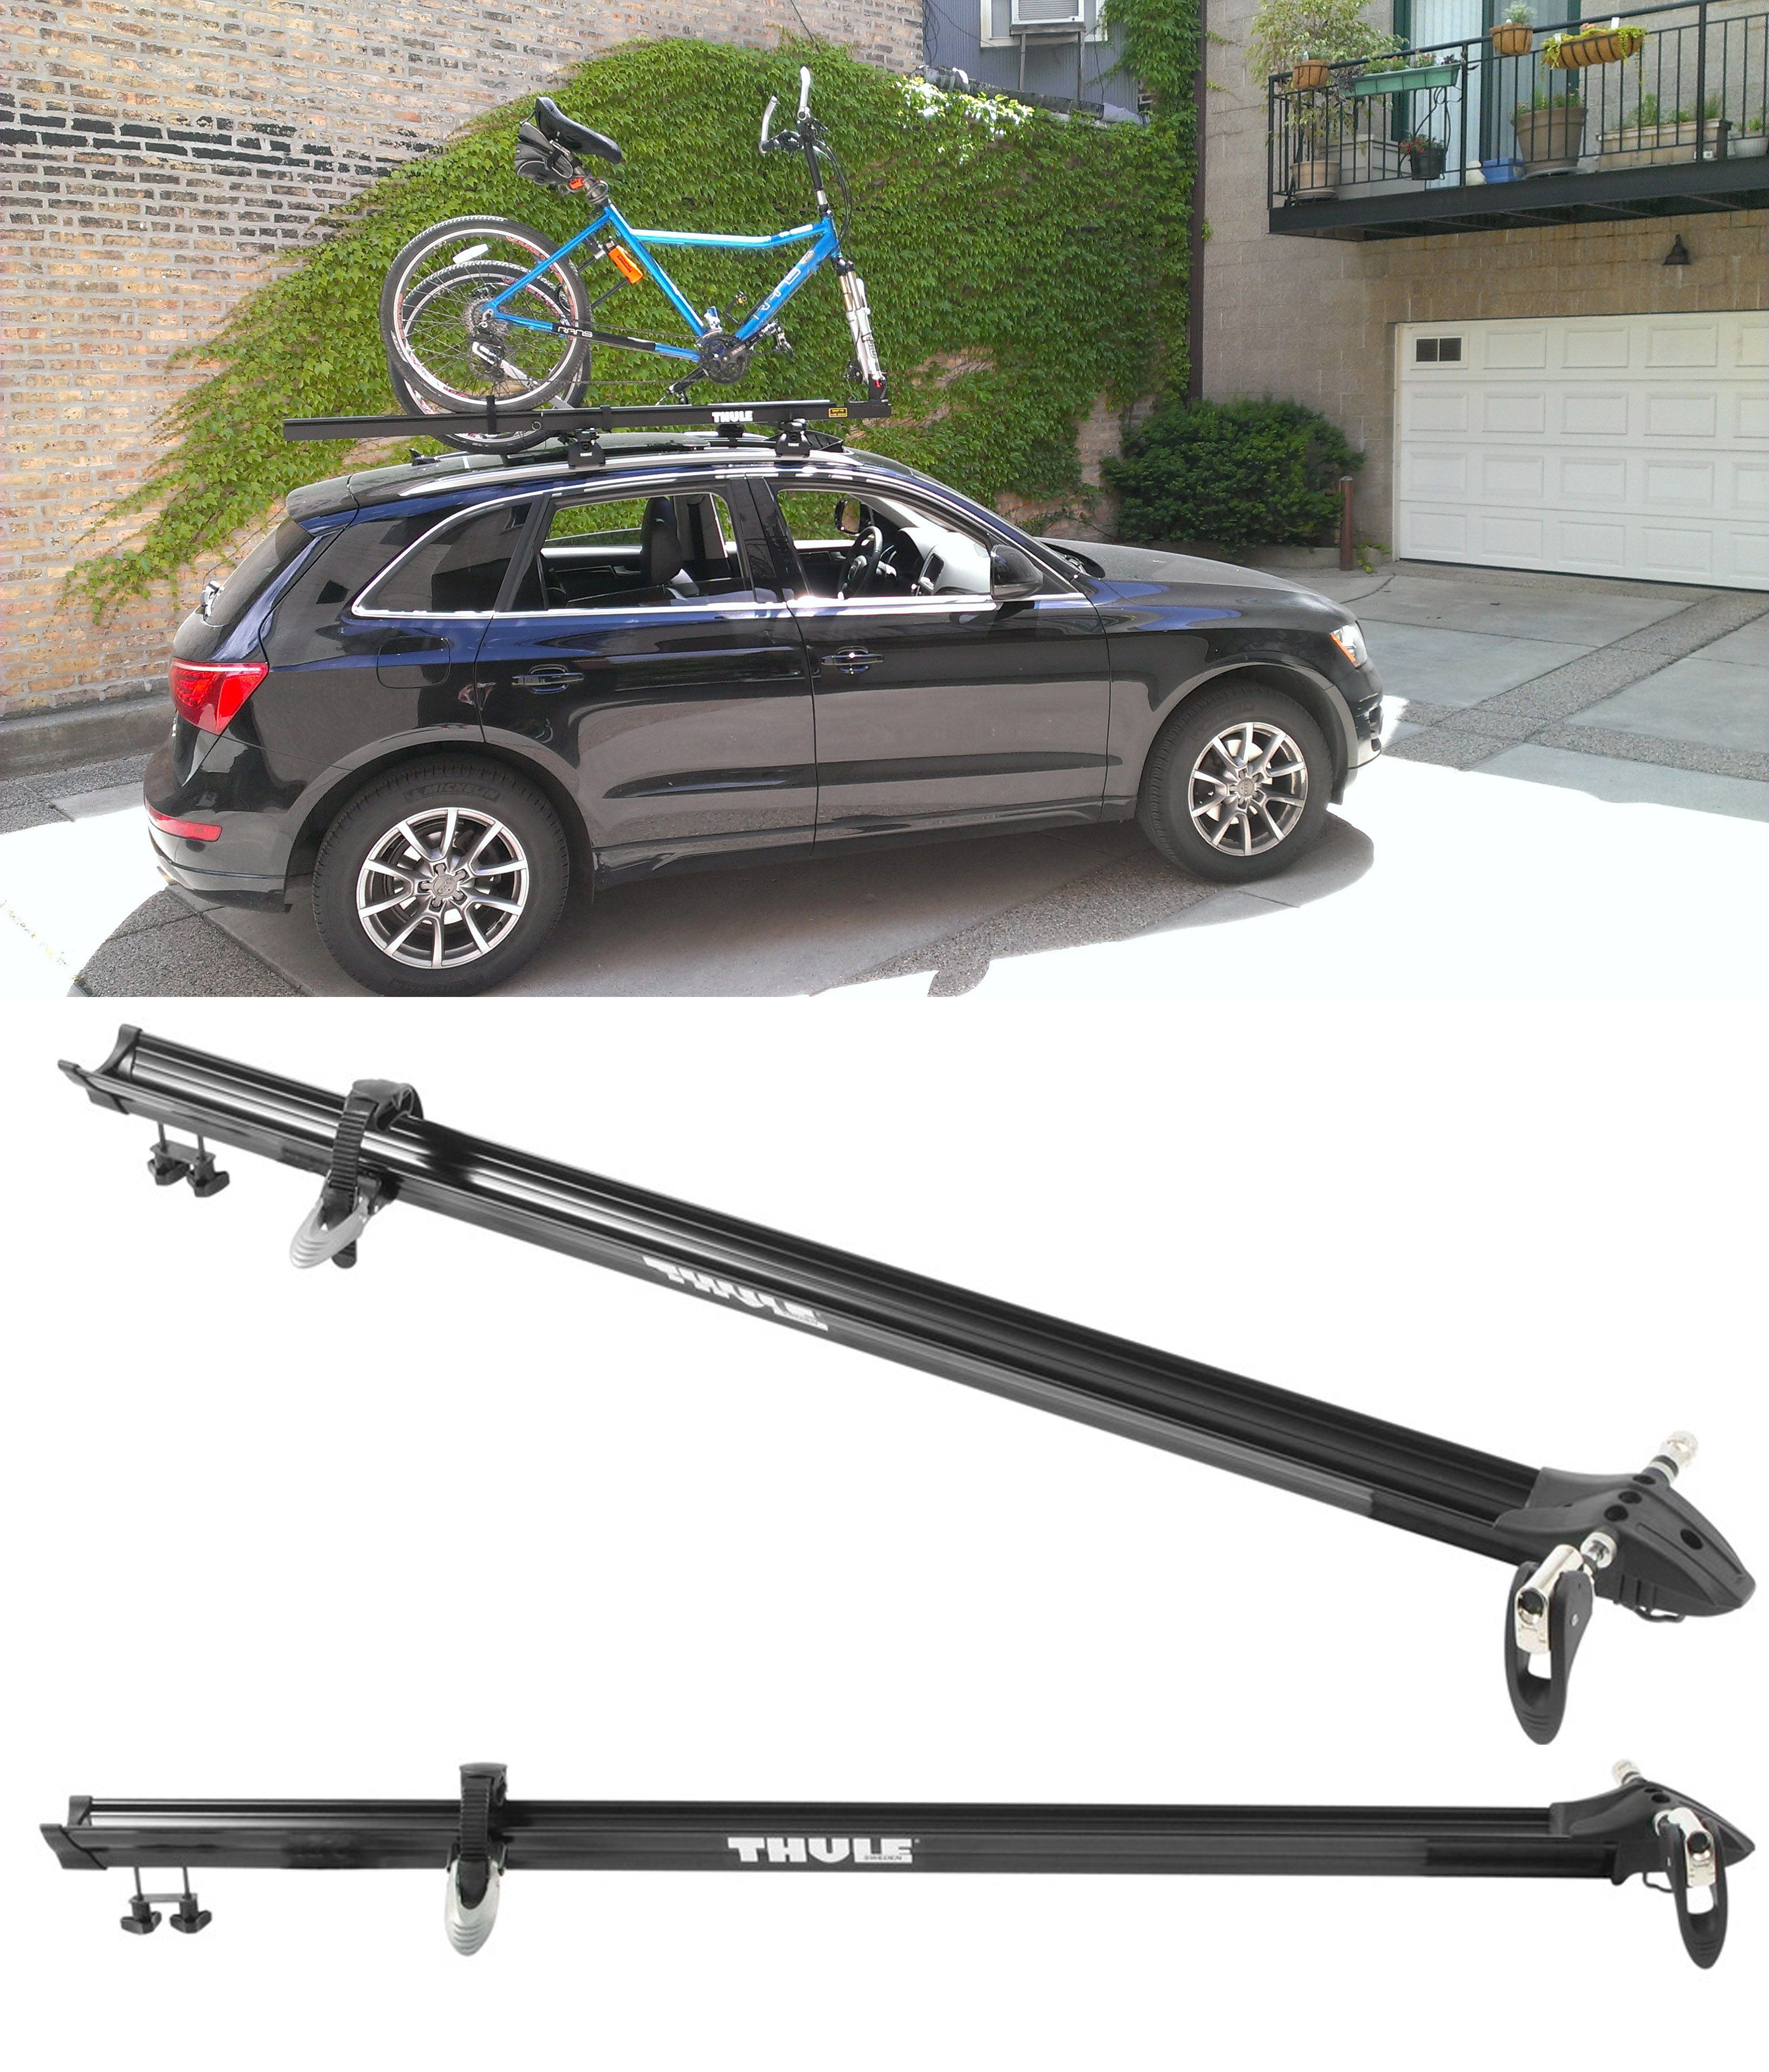 Thule Prologue Xt Roof Bike Rack Fork Mount Clamp On